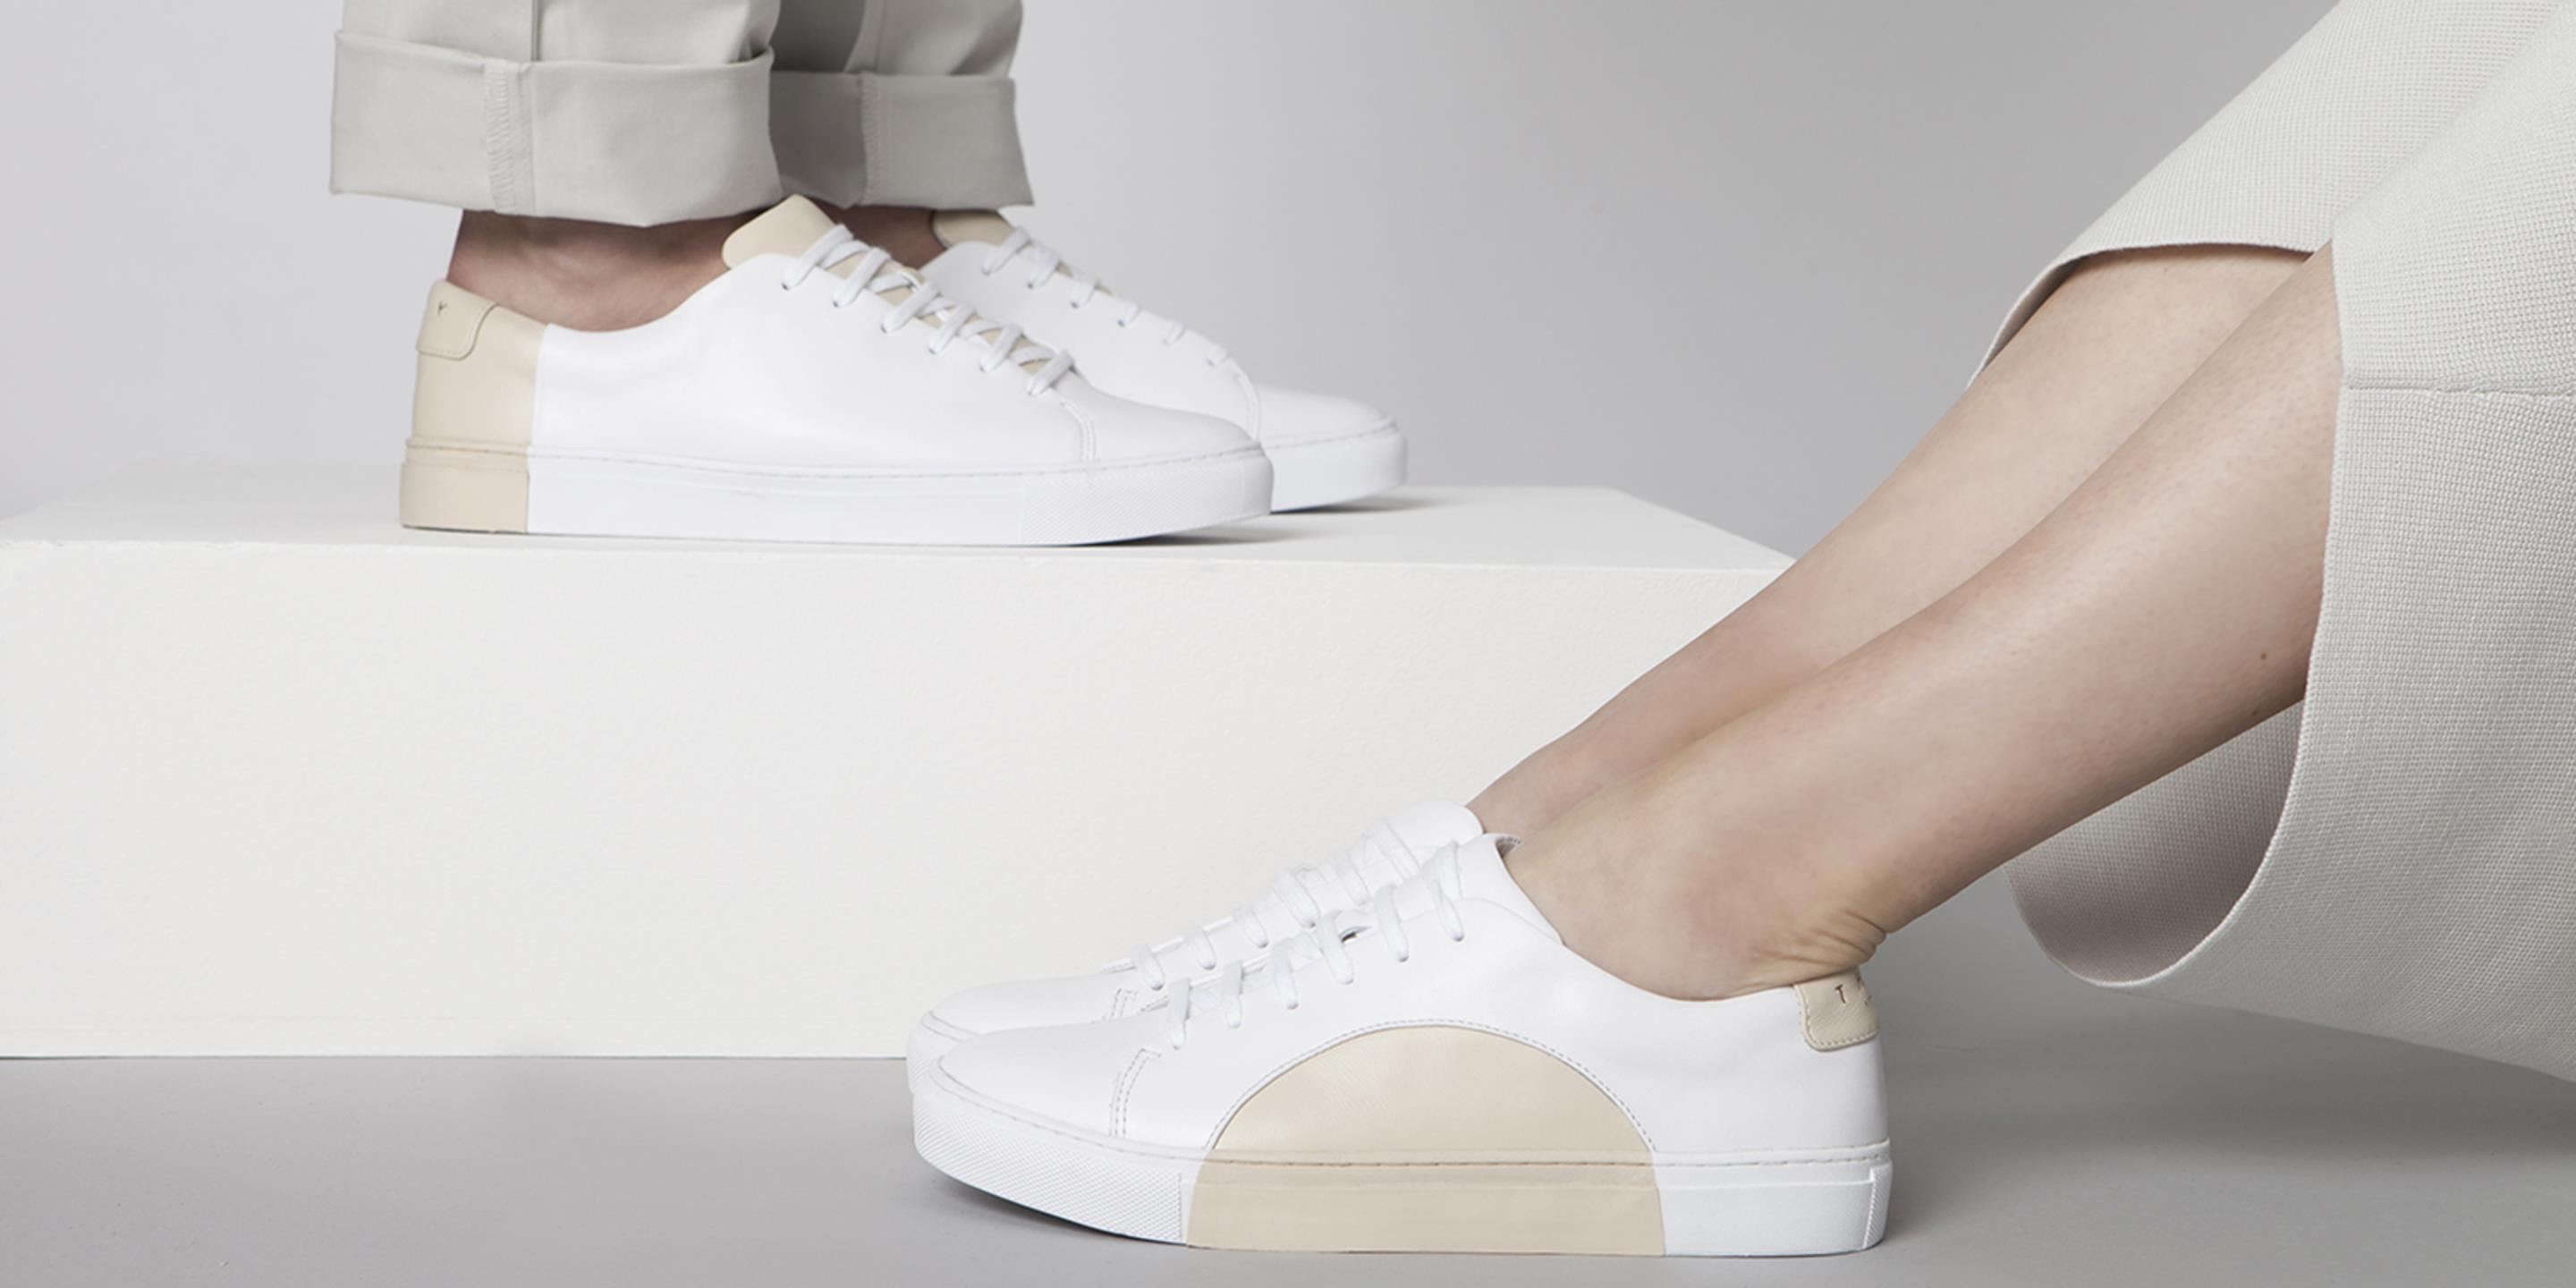 The Most Stylish New Sneakers - Furthermore